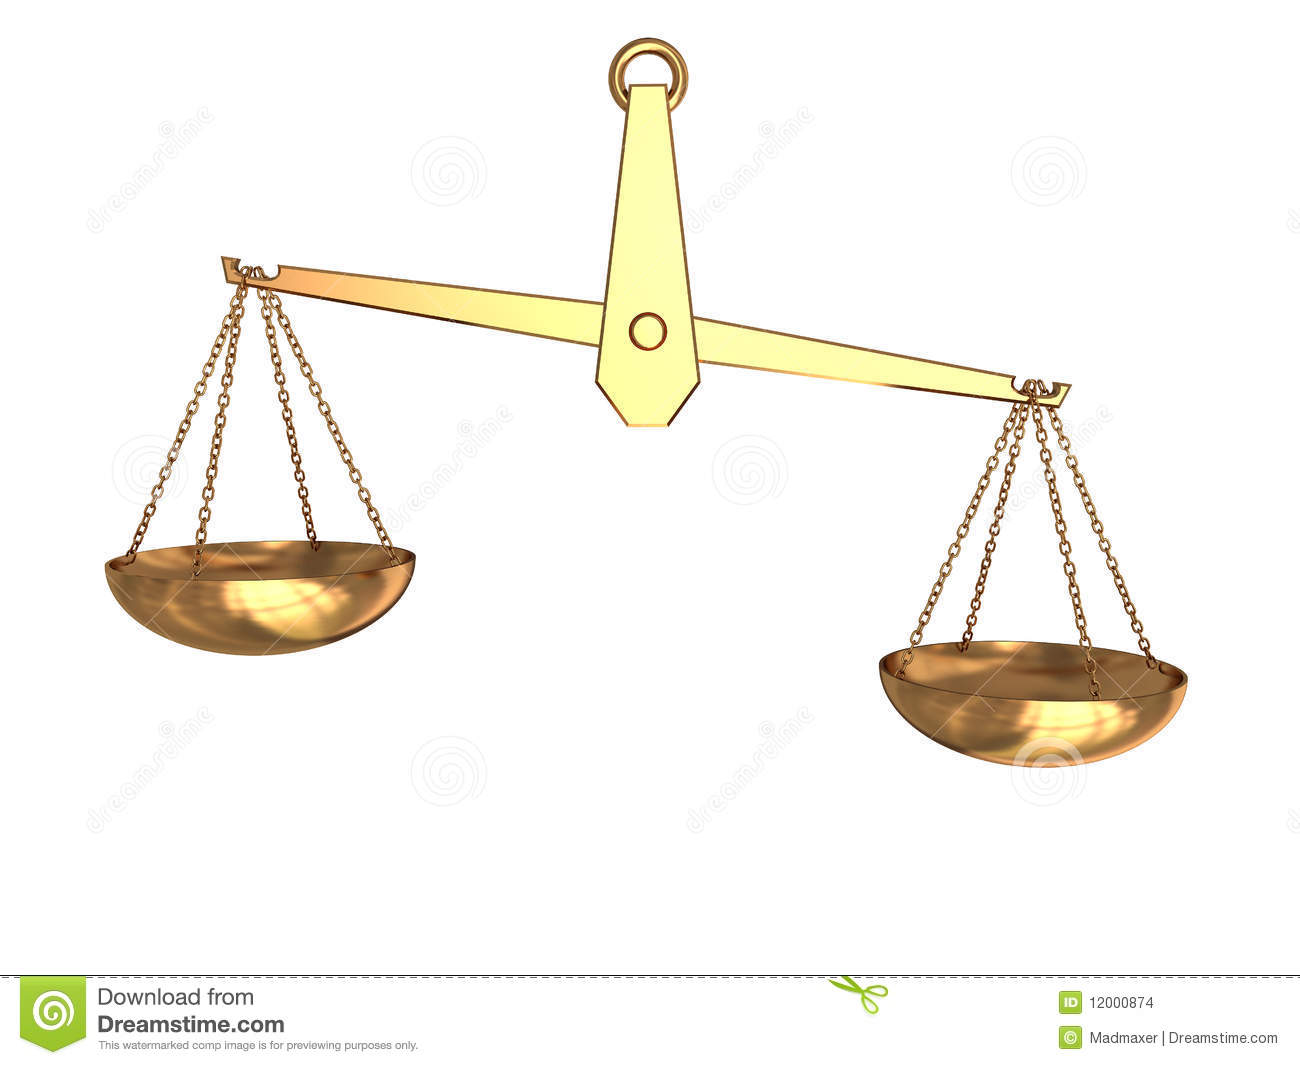 3d illustration of imbalance scale isolated over white background.